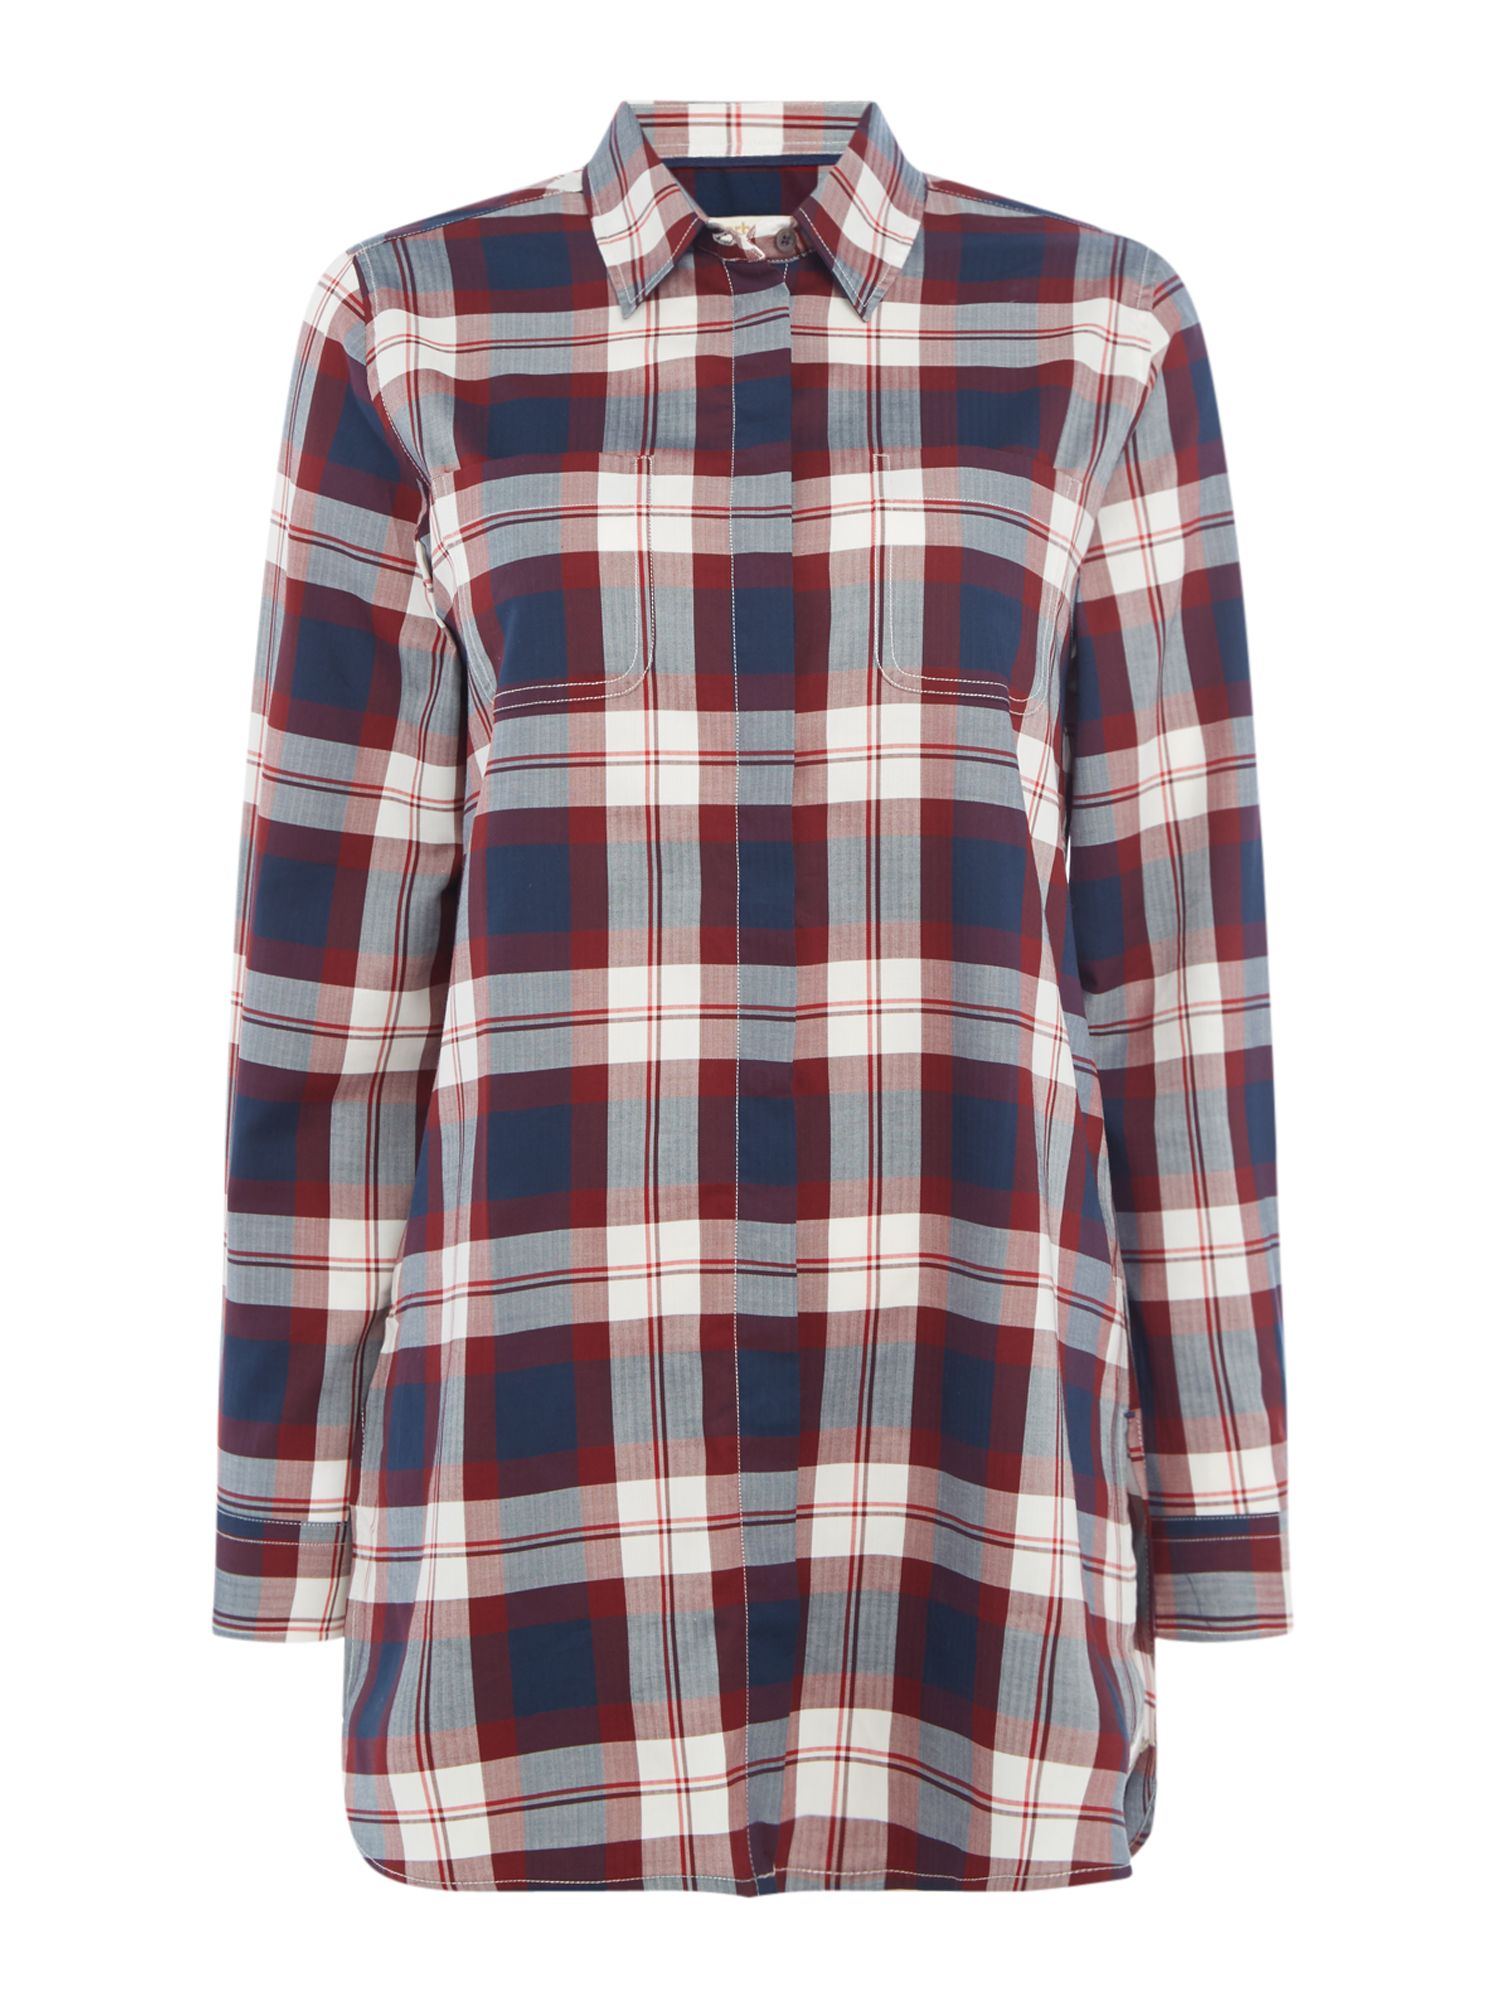 Barbour Beachley Tunic In Large Check Pattern, French Blue